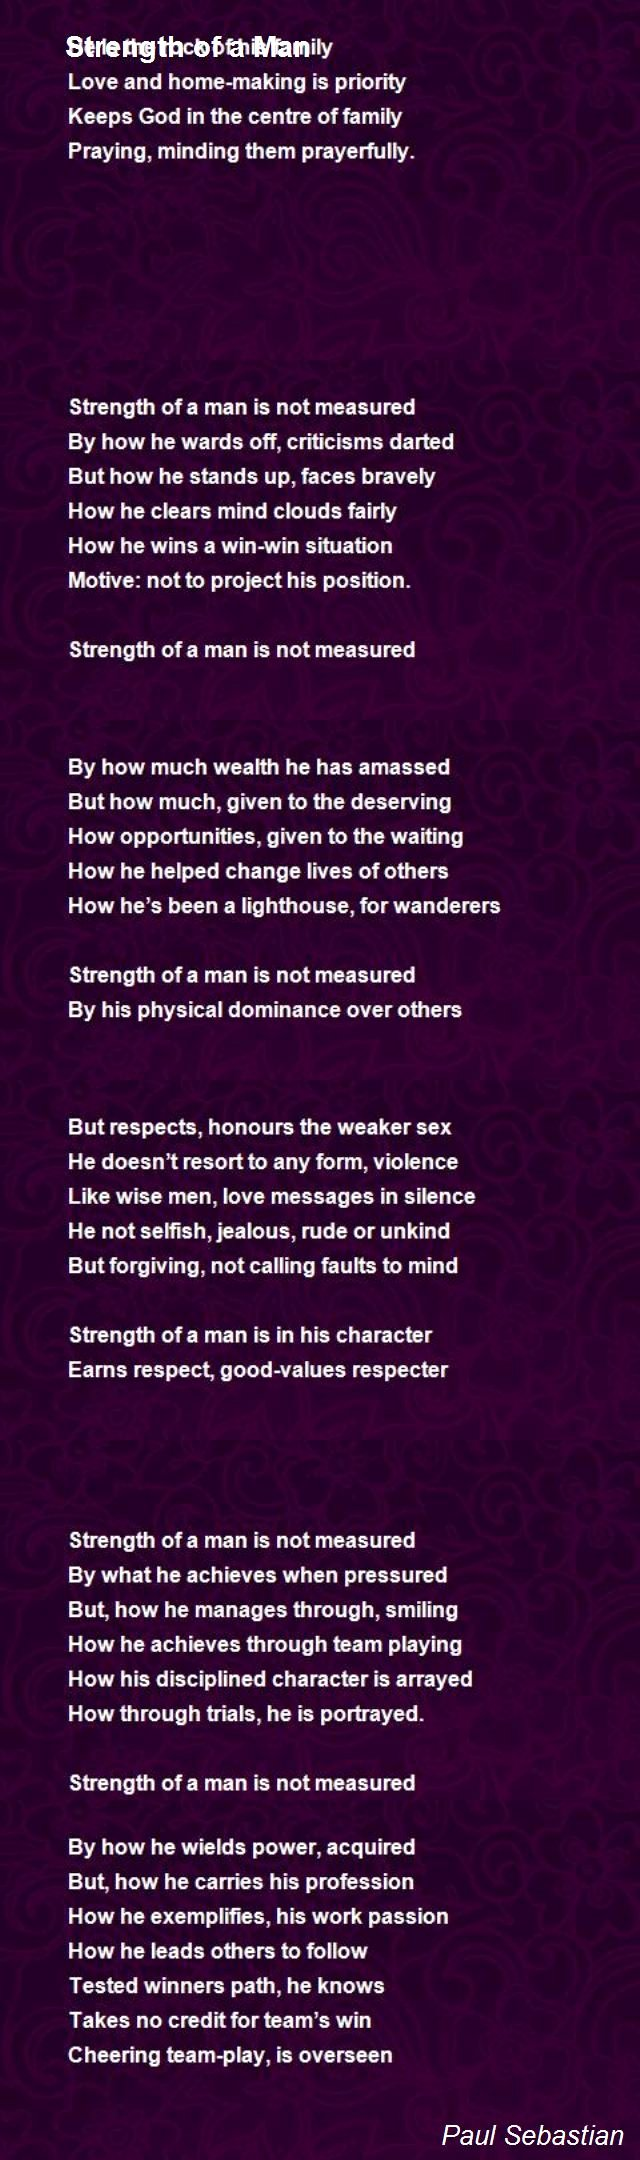 Love Poems Of Great Men New Strength A Man Poem by Paul Sebastian Poem Hunter